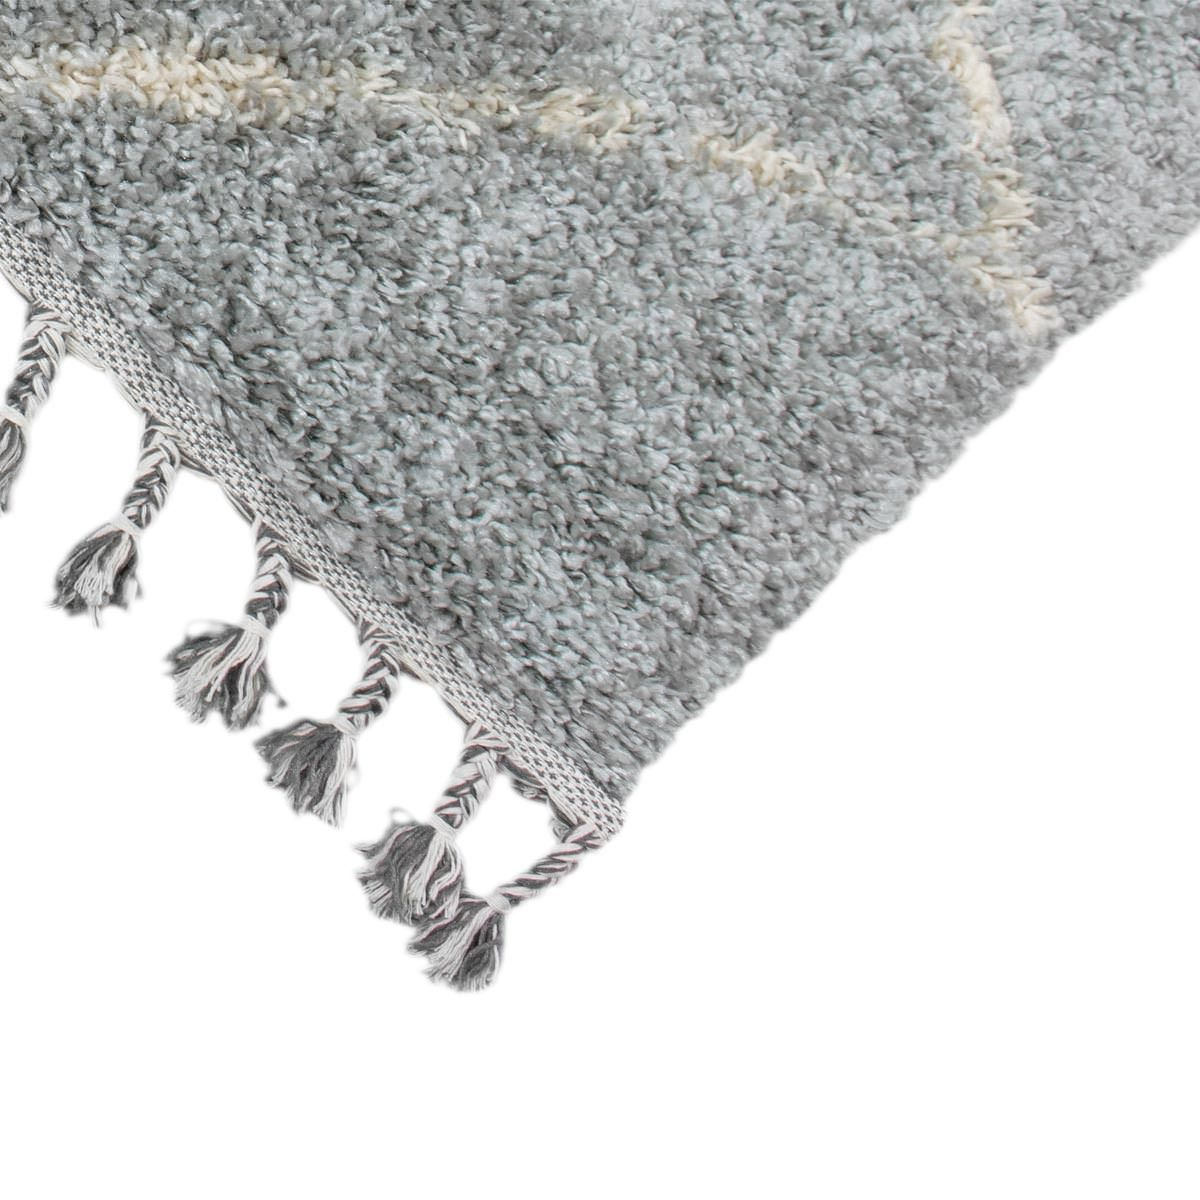 Shaggy Marrakech Rug 07 Grey/Cream 4